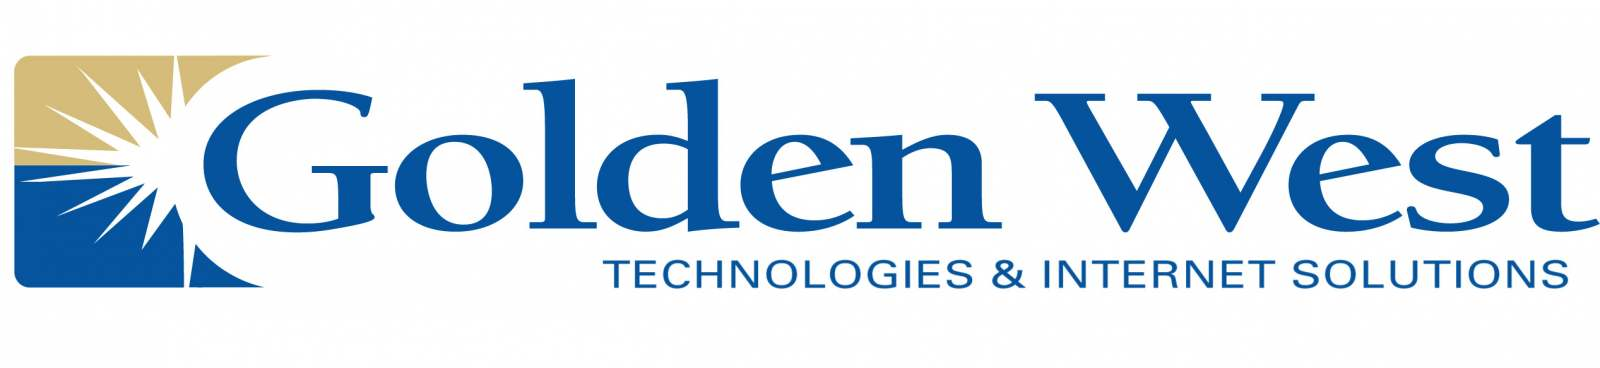 Golden West Technologies Logo